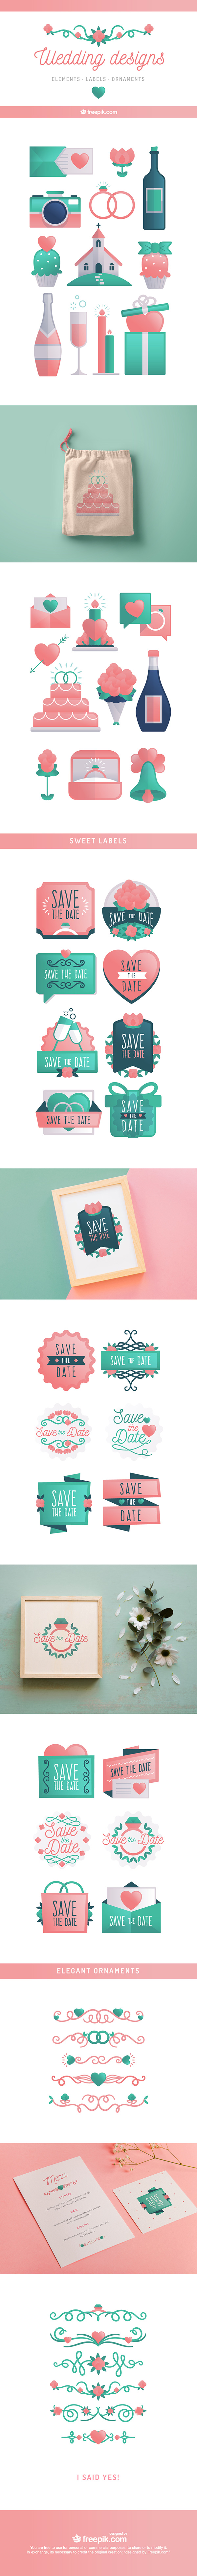 Fresh and lovely wedding designs for fun and colorful weddings by find more wedding inspired icons invitations and embellishments at freepik and flaticon you will find everything youd ever need to design the perfect stopboris Images